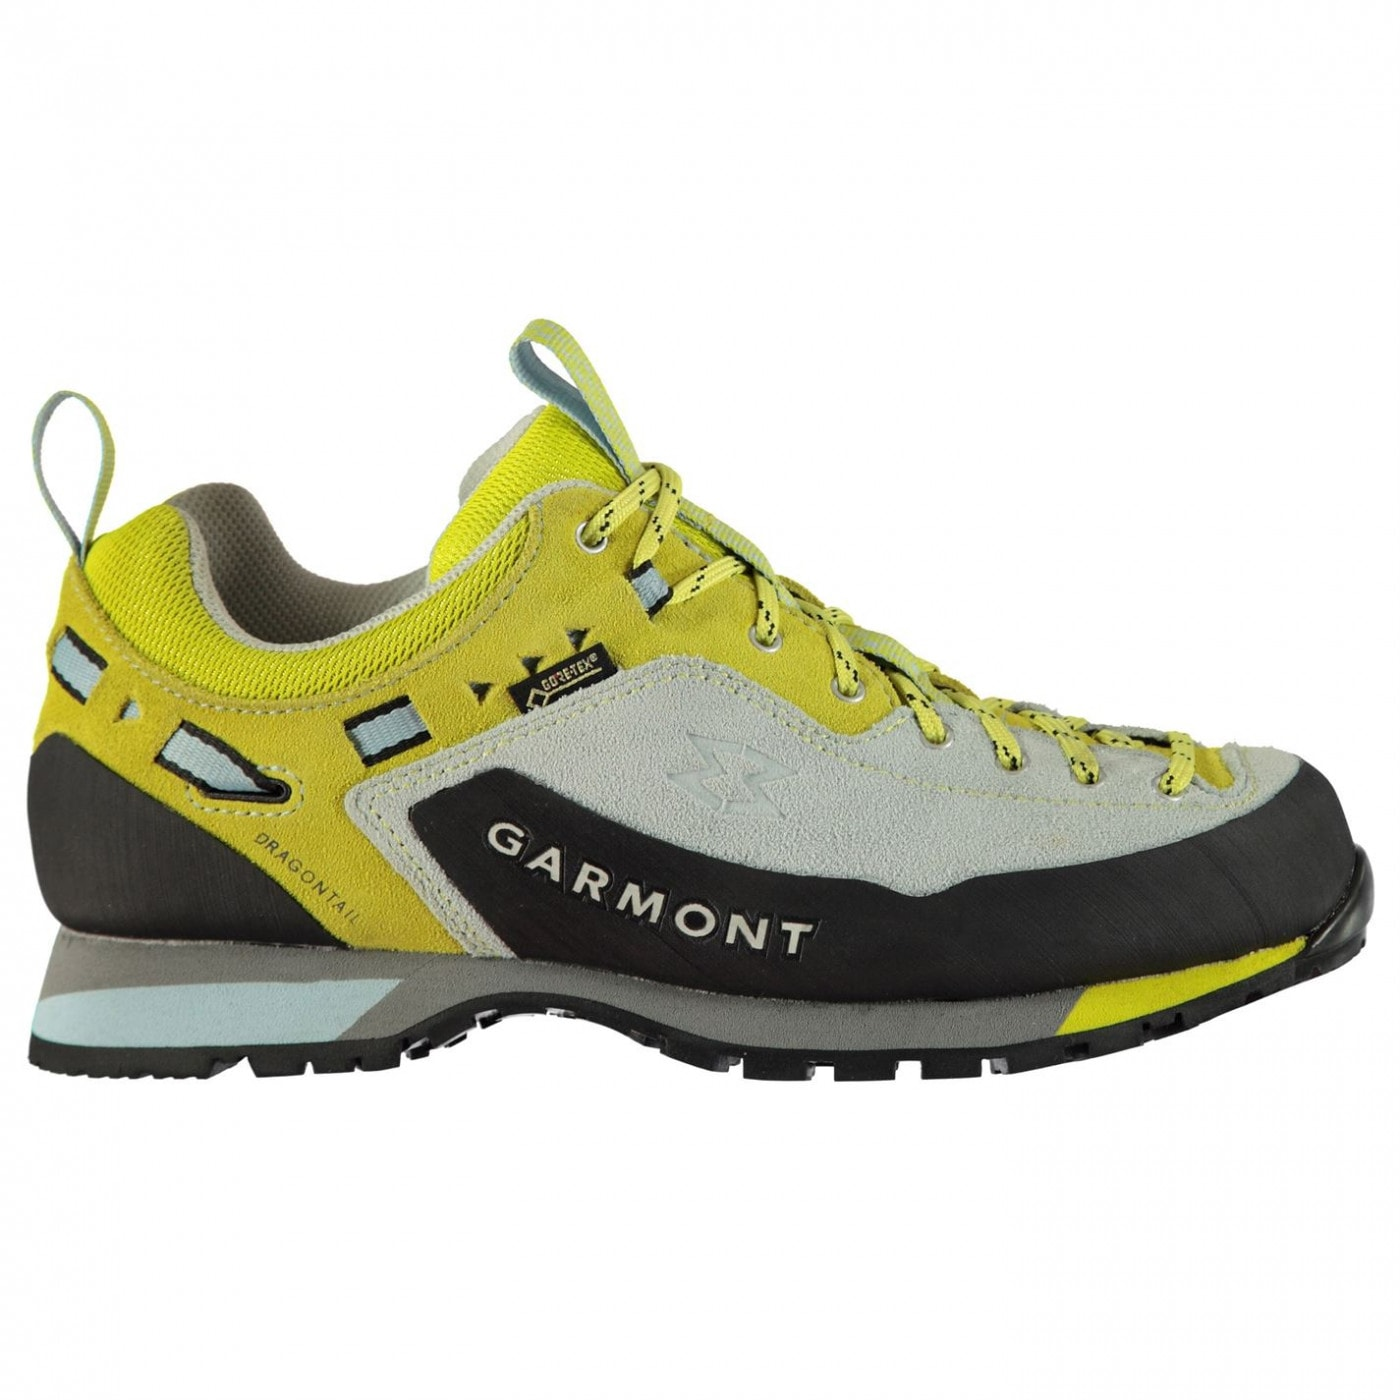 Garmont Dragontail GTX Walking Shoes Ladies